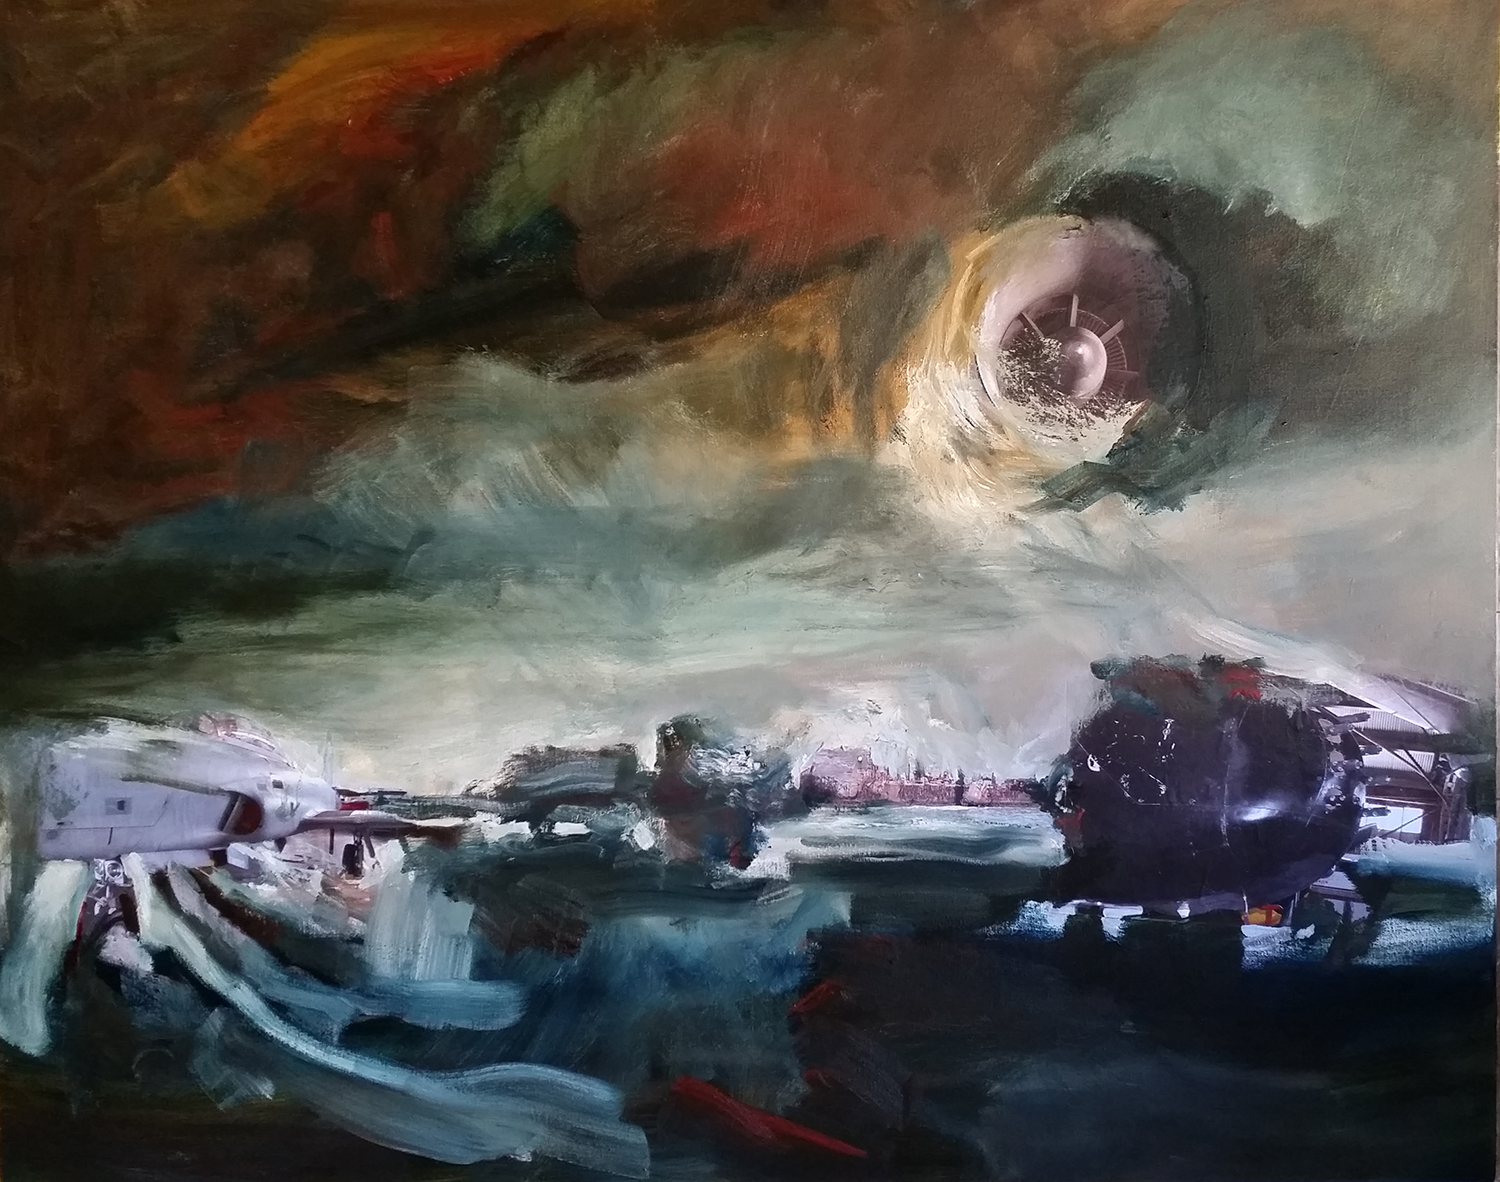 Luna's Surge | Oil and collage on canvas | 48 x 60